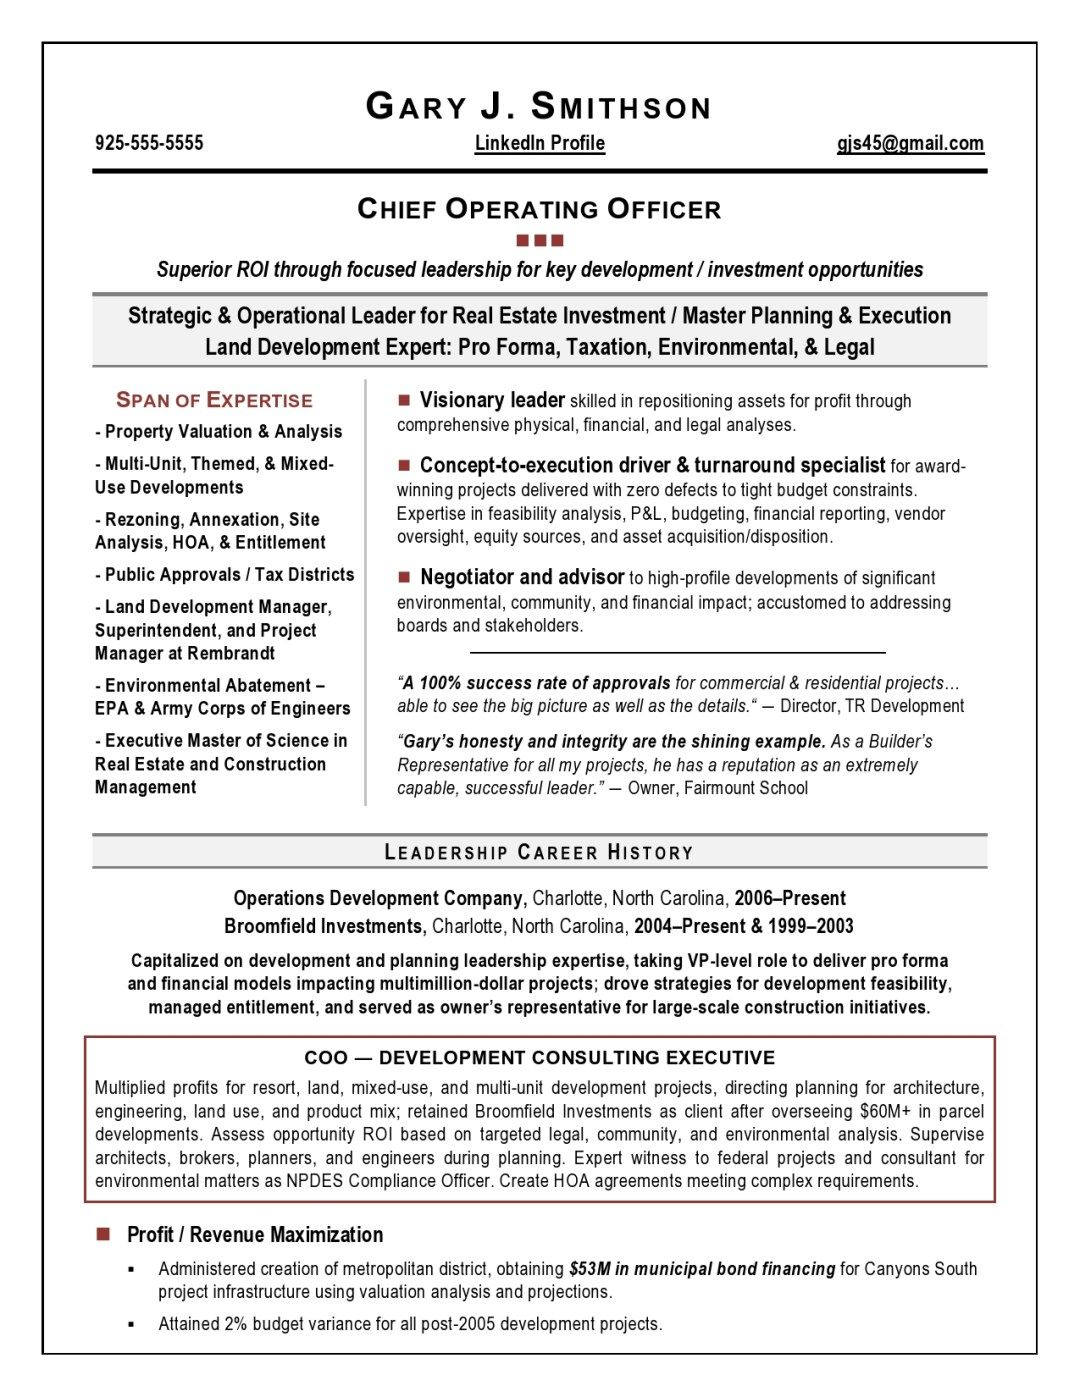 Coo Resume Sample Page 1 Resume Examples Executive Resume Resume Writing